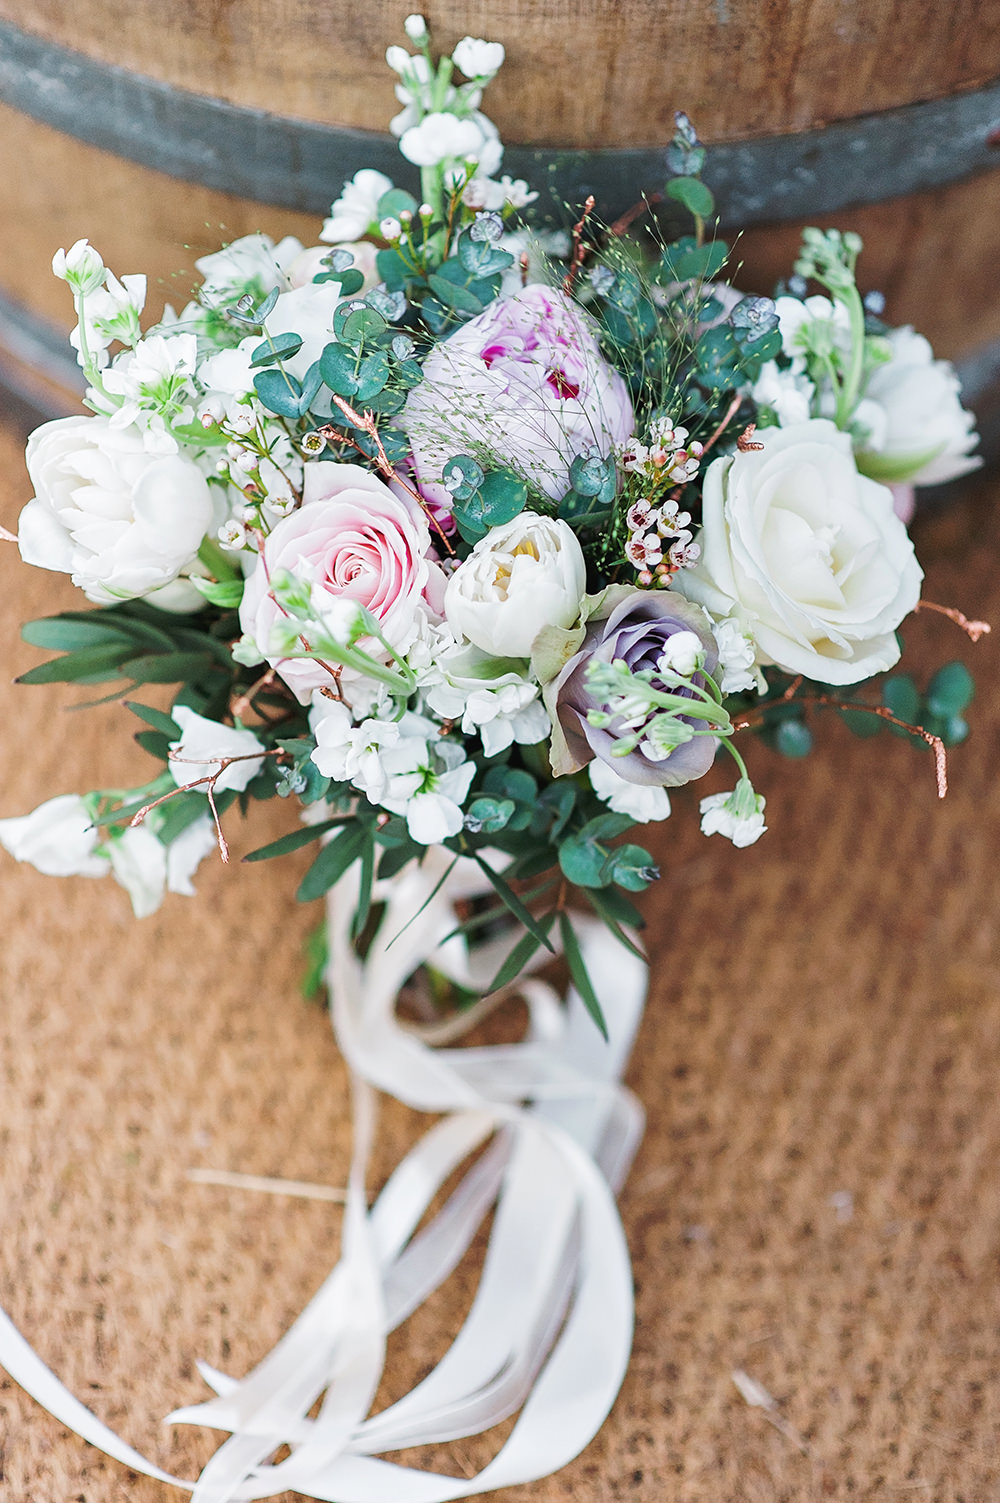 Bride Bridal Bouquet Peony Rose Pink White Edmondsham House Wedding Darima Frampton Photography